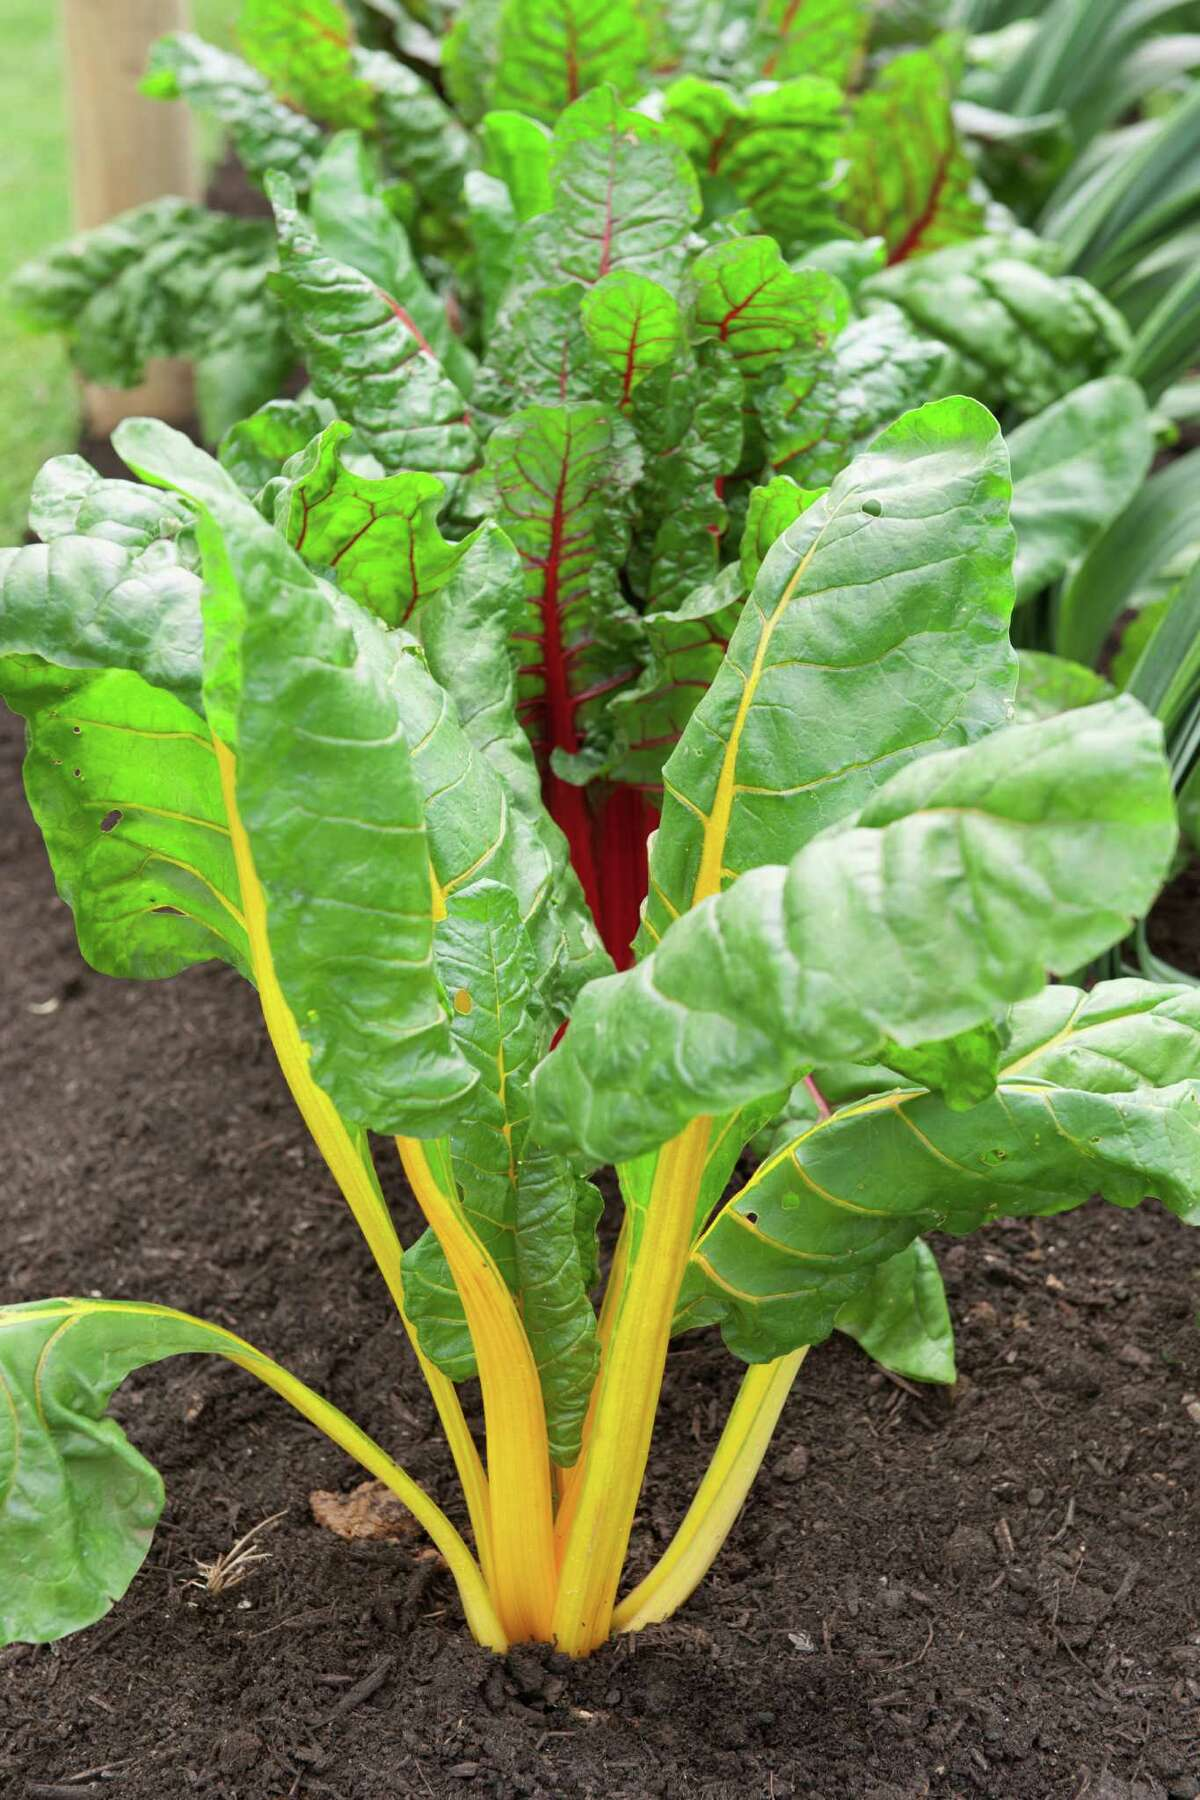 Swiss chard is among the vegetables that thrive in winter gardens. Beta vulgaris subsp. cicla 'Bright Lights' (Swiss Chard) with yellow and red stems and green leaves